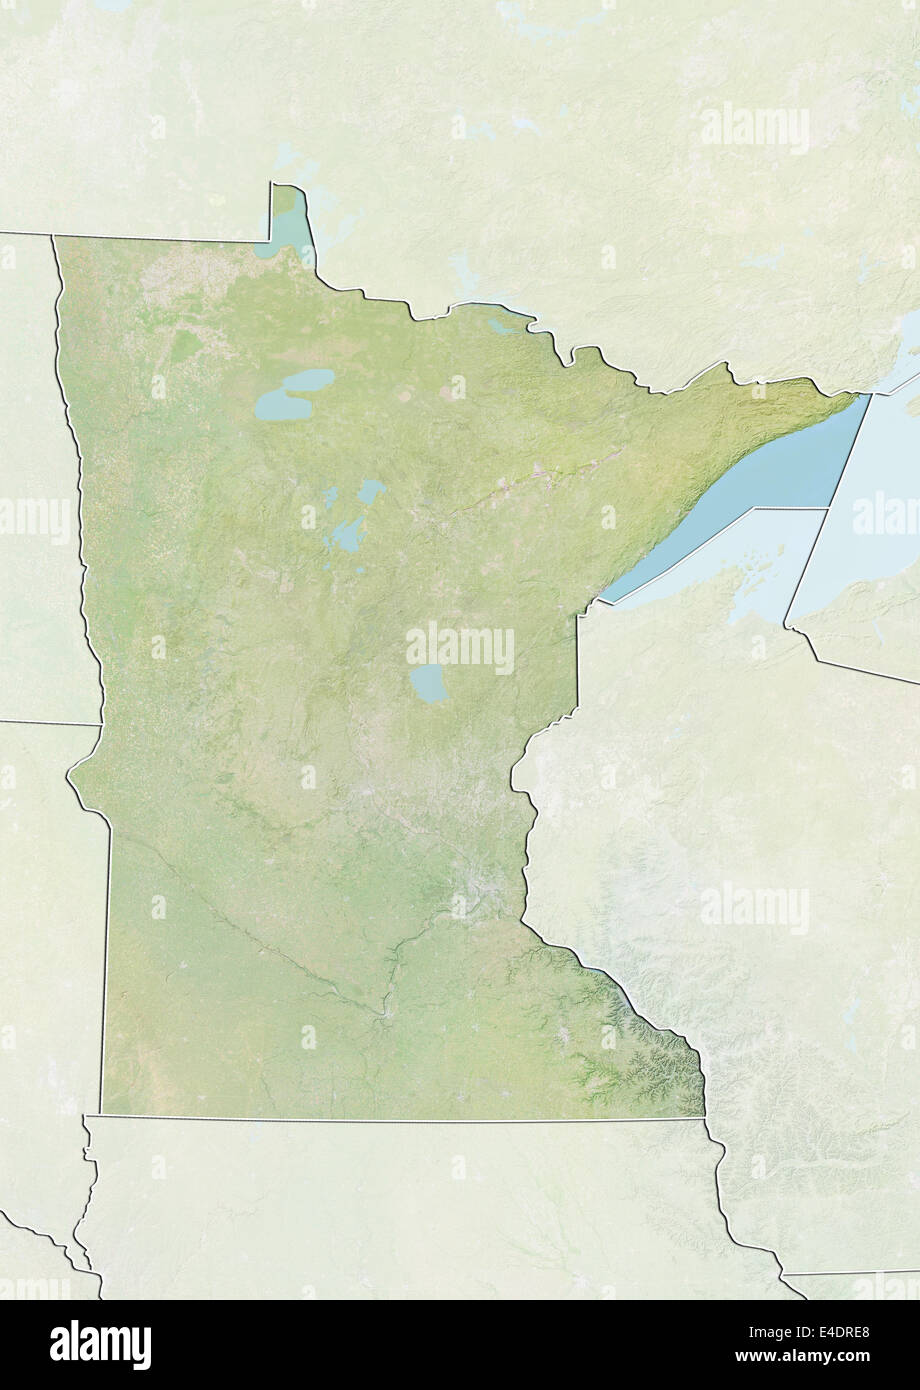 State Of Minnesota United States Relief Map Stock Photo